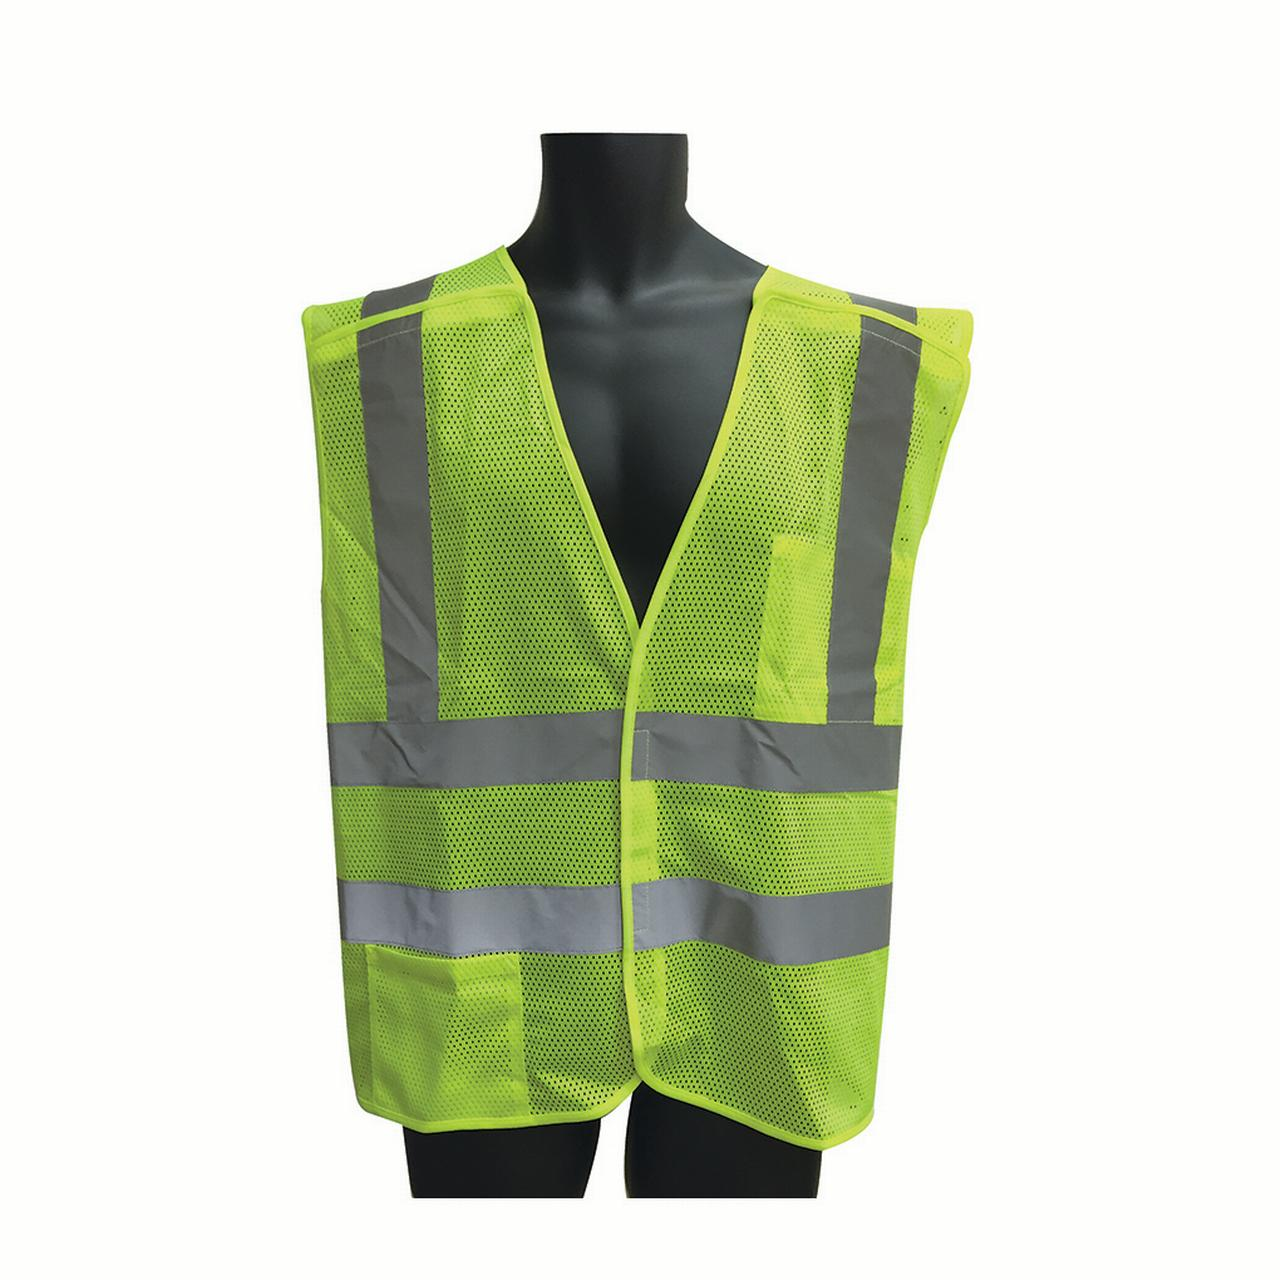 Class II, 5-Point Breakaway Vest Lime Green Mesh. Size: X-Large Lot of 1 Pack(s) of 1 Unit